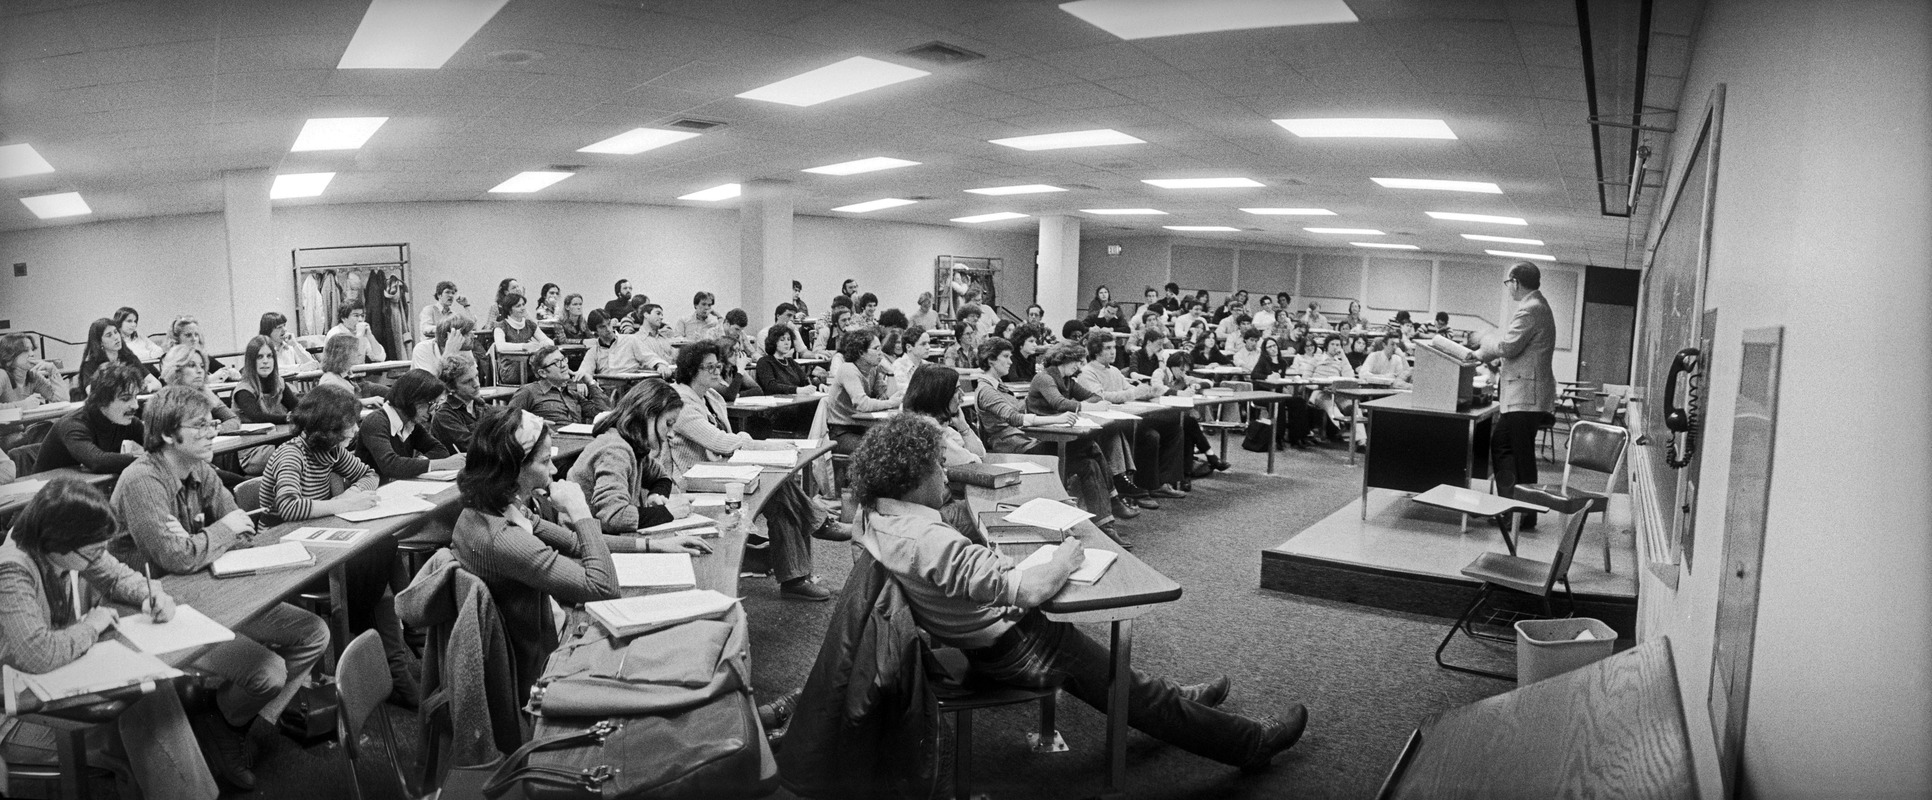 Large lecture class at Suffolk University, Beacon Hill, Boston